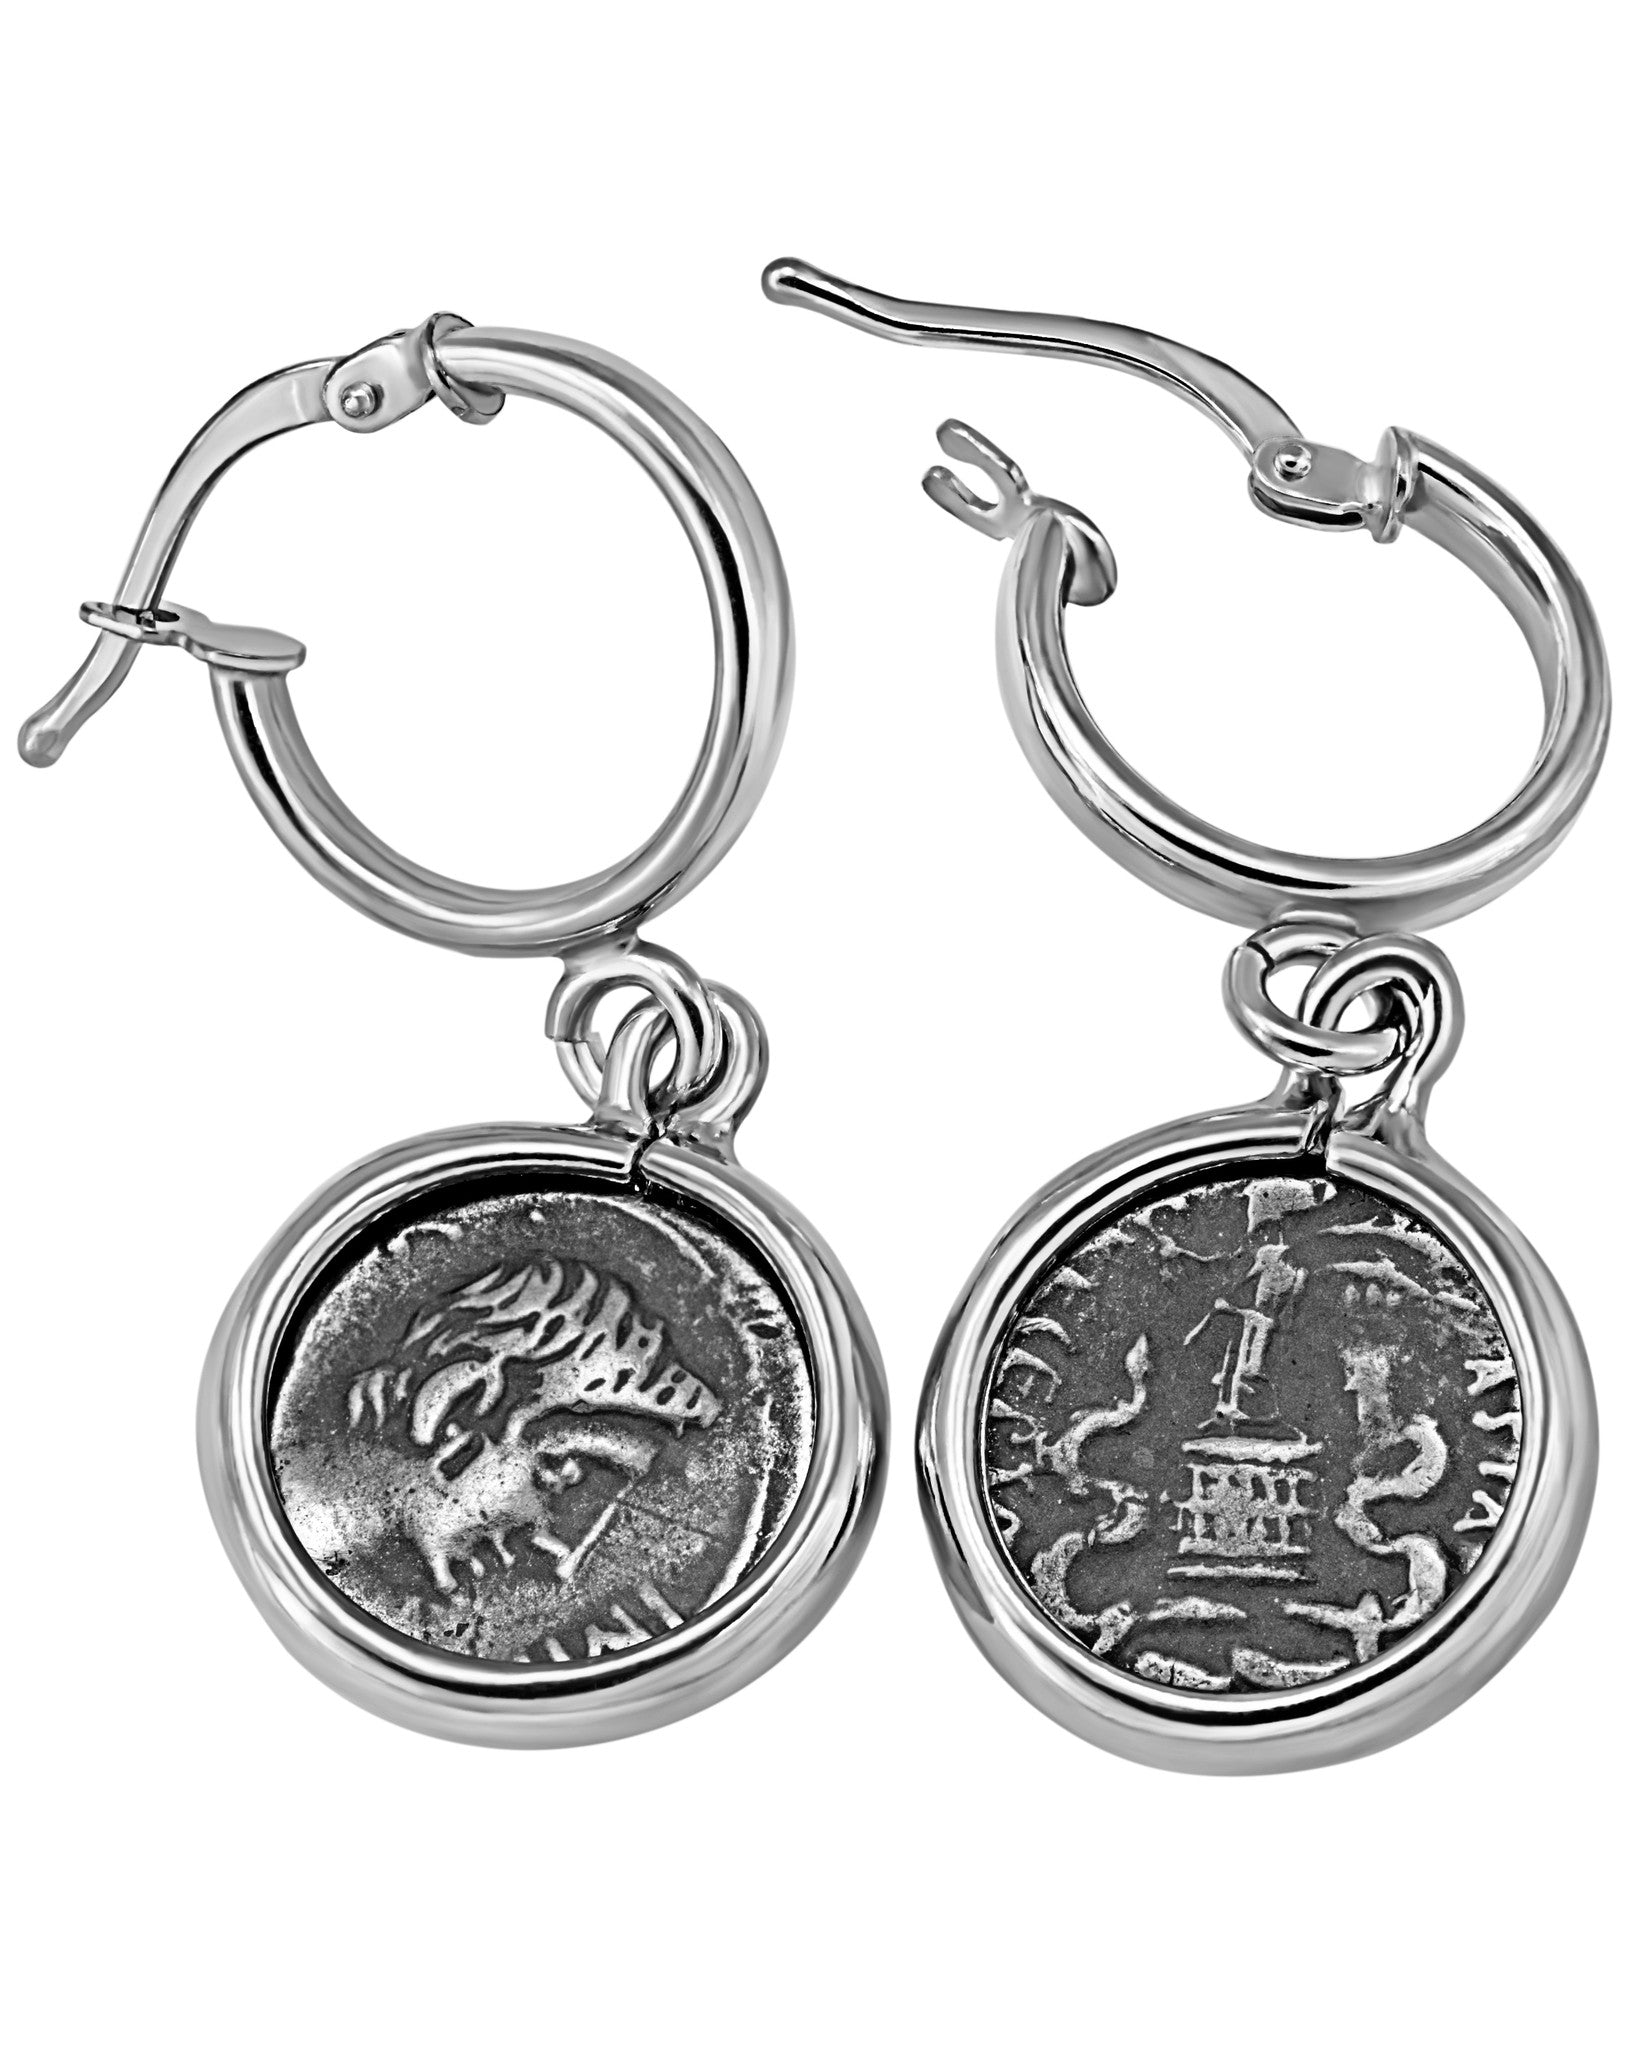 Legacy Sterling Silver Hook Earrings w/ Antique Ottaviano Coins